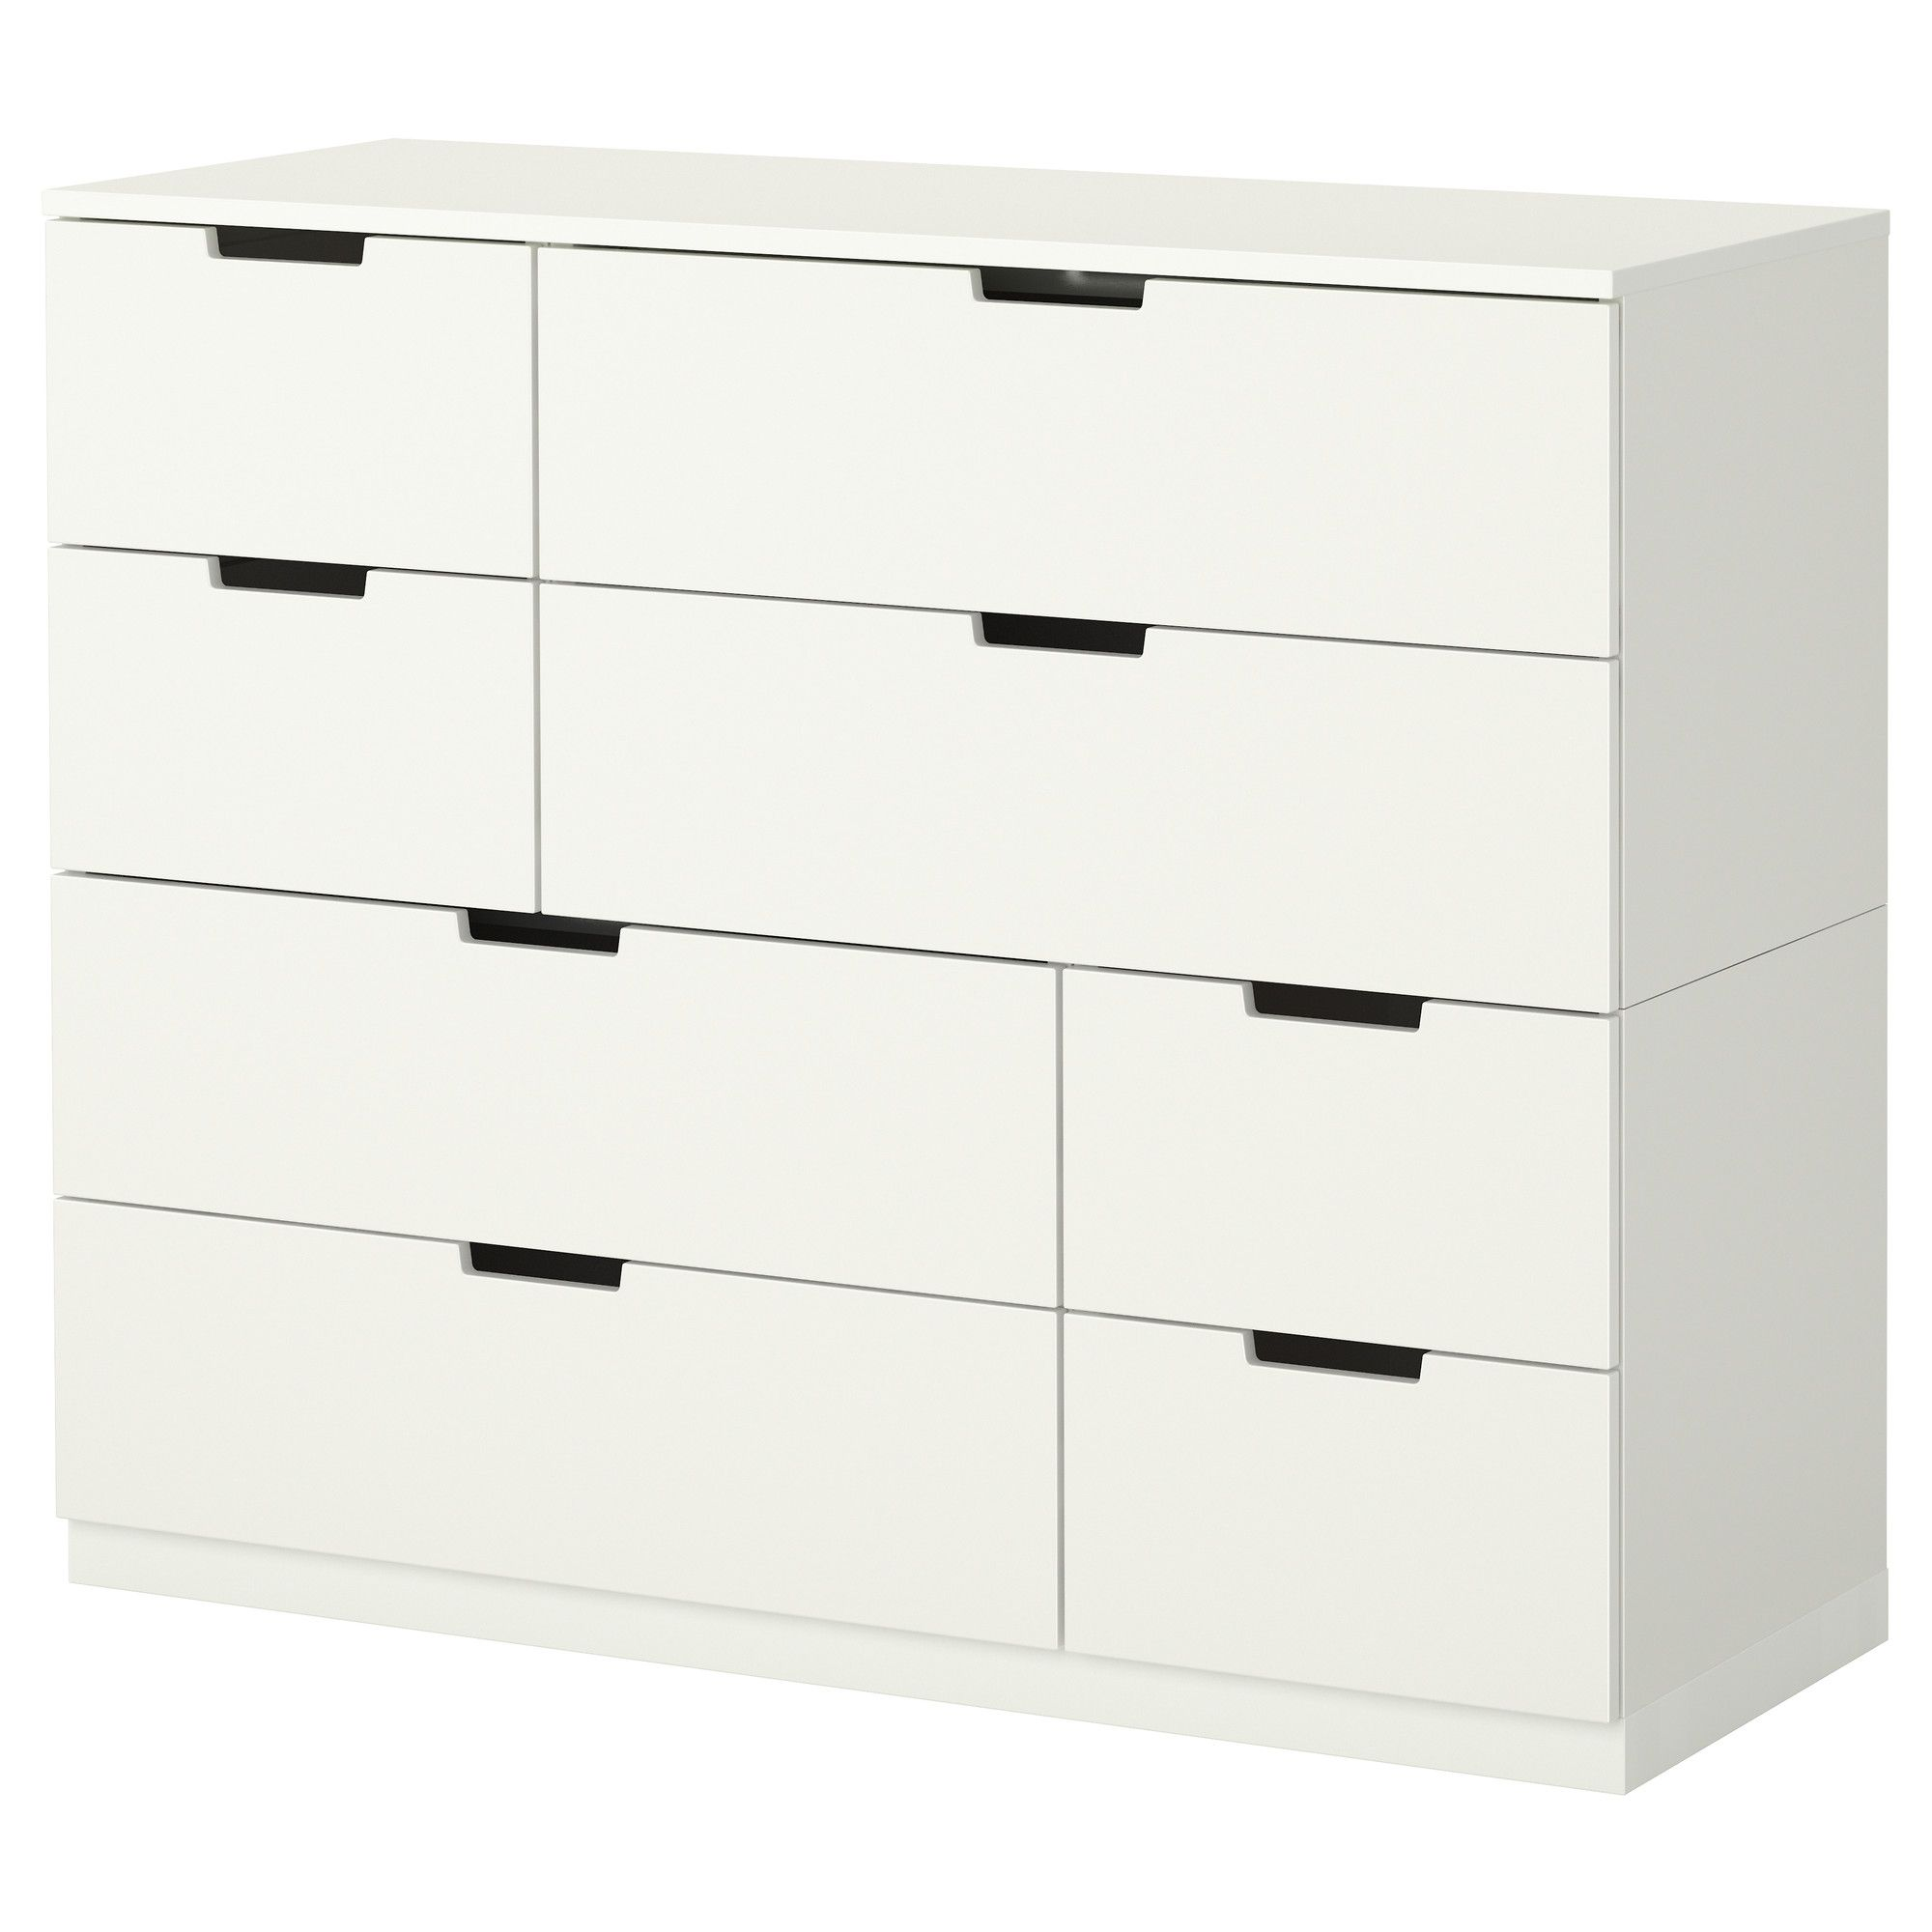 Ikea Malm Ladekast Met 3 Laden.Bed Ikea Lades Best Hemnes Bedbank Ikea Ikeanl Wit Bank Lades